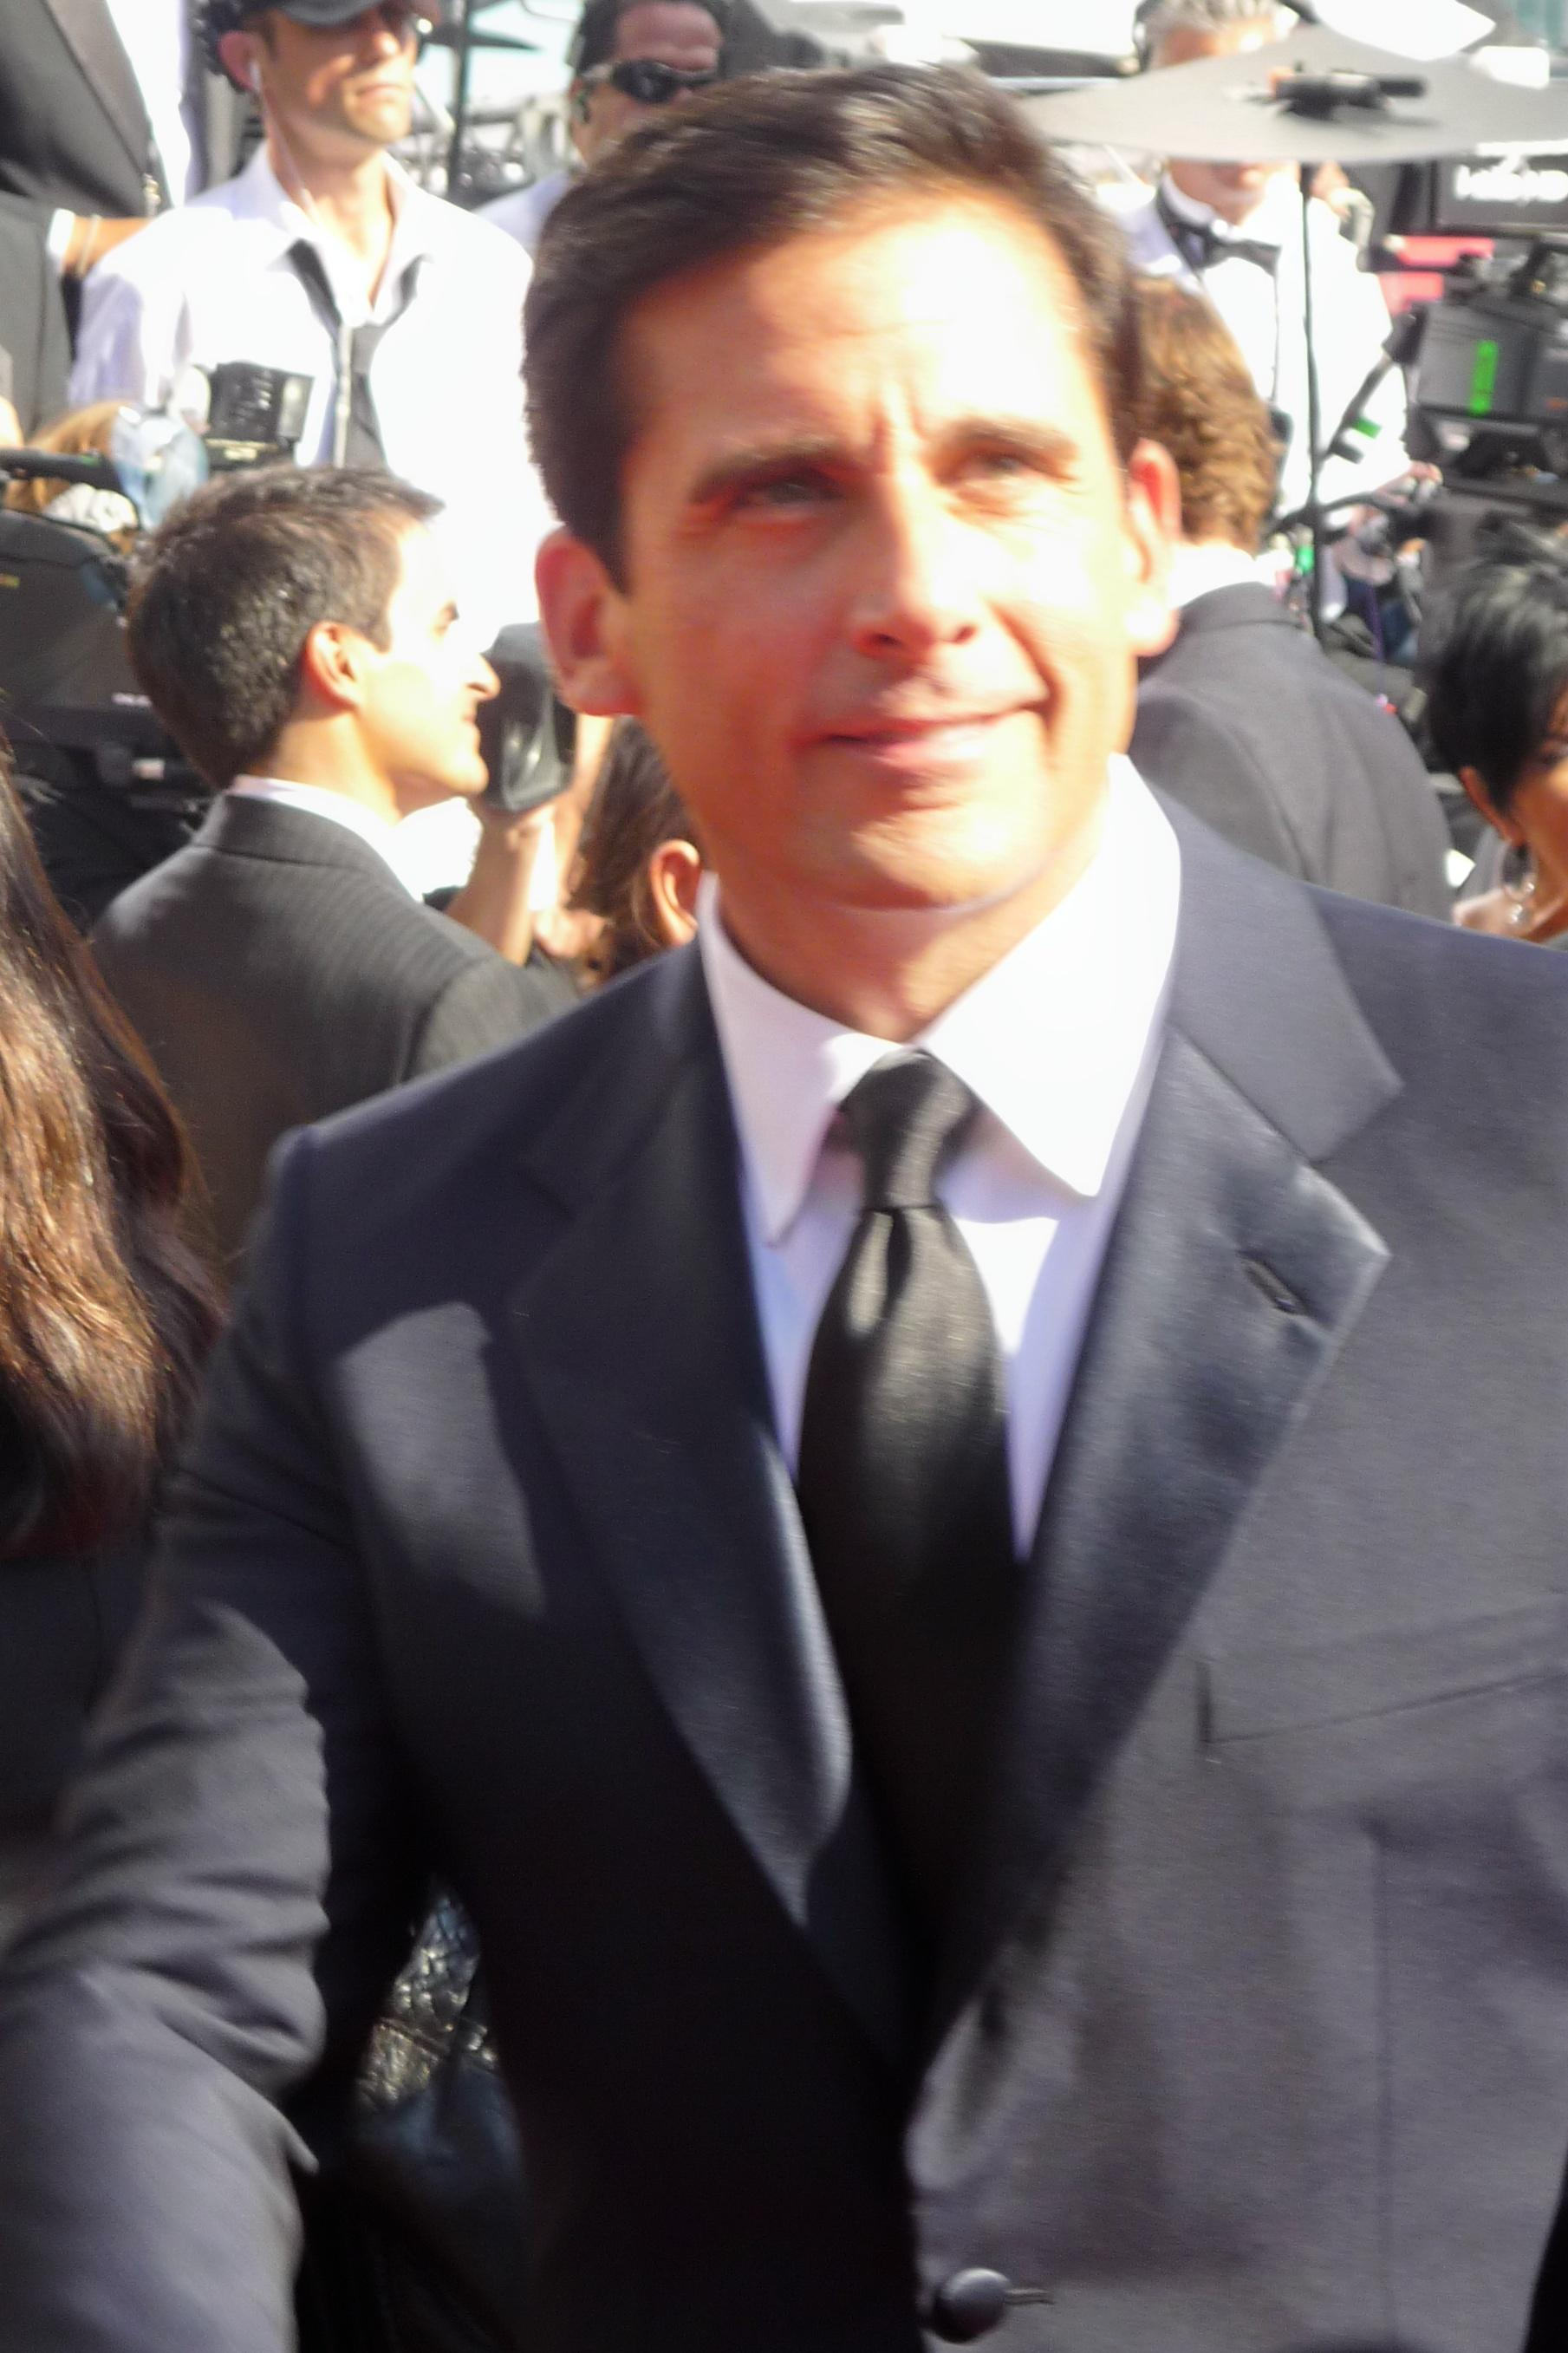 Michael Scott Wikipedia Michael Scott's Steve Carell